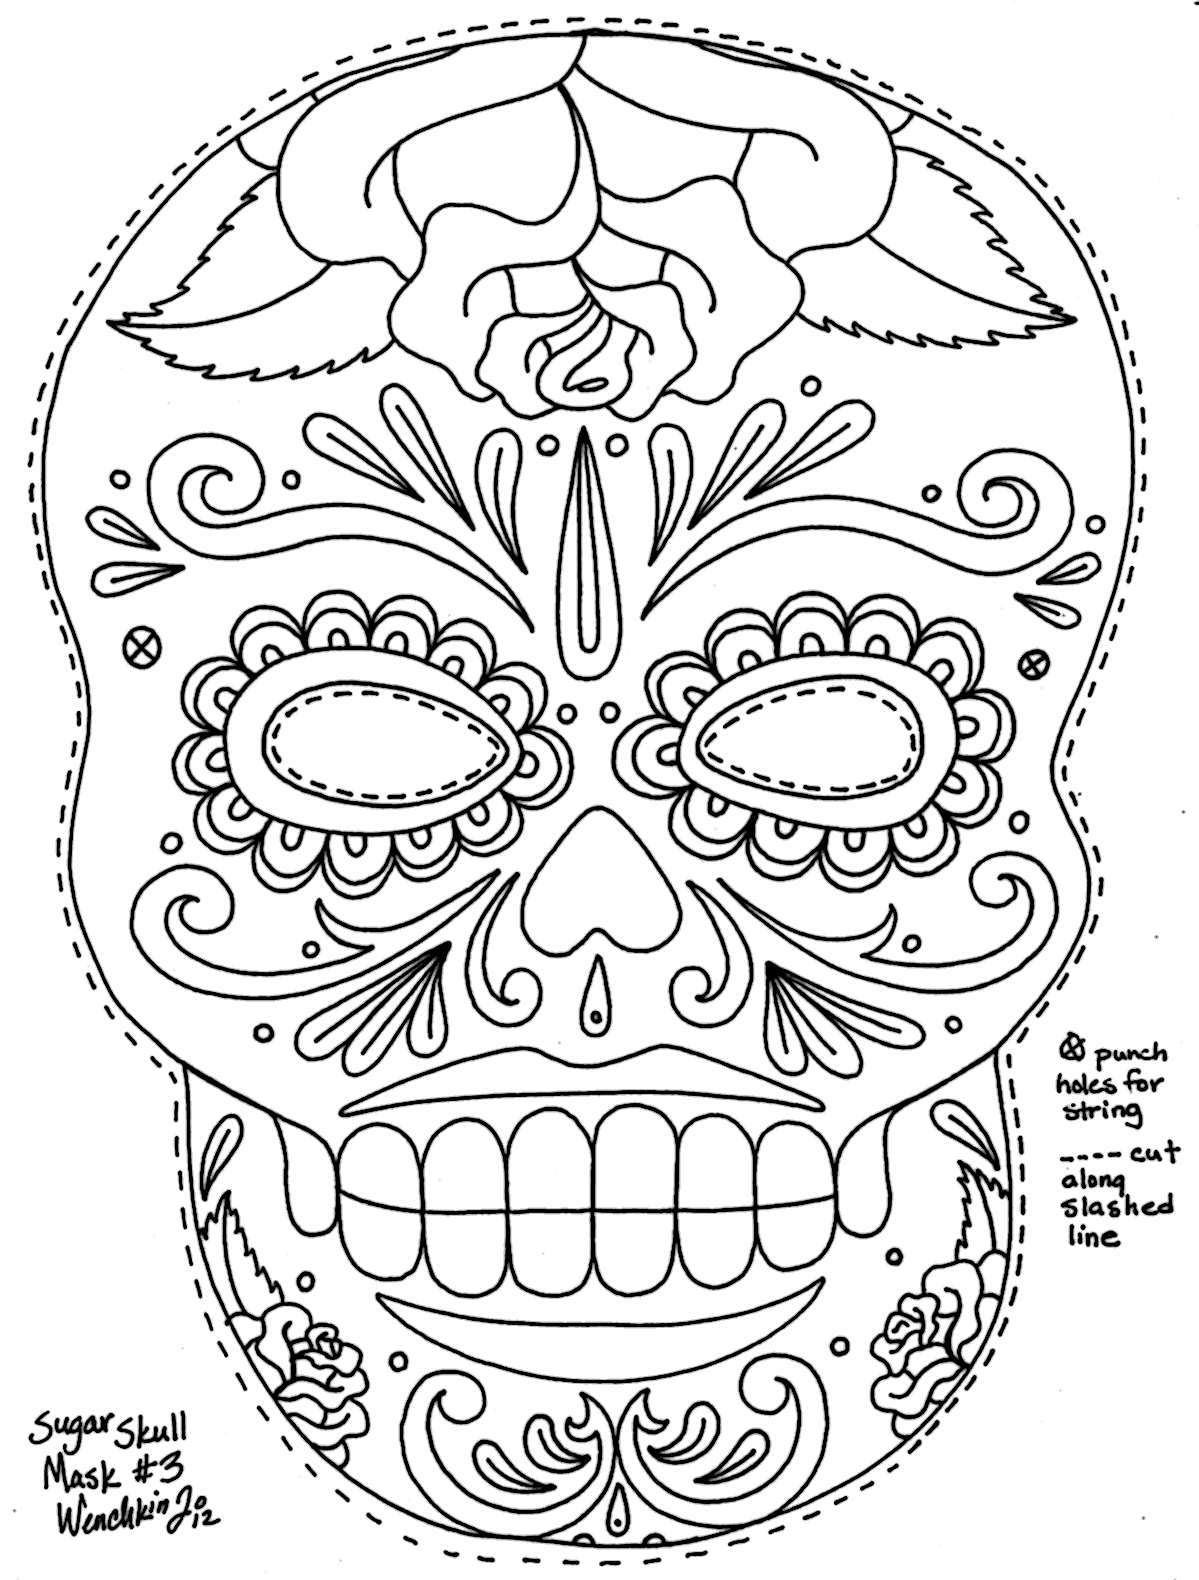 dia de los muertos printable coloring pages day of the dead coloring and craft activities dia de los pages dia muertos de los printable coloring